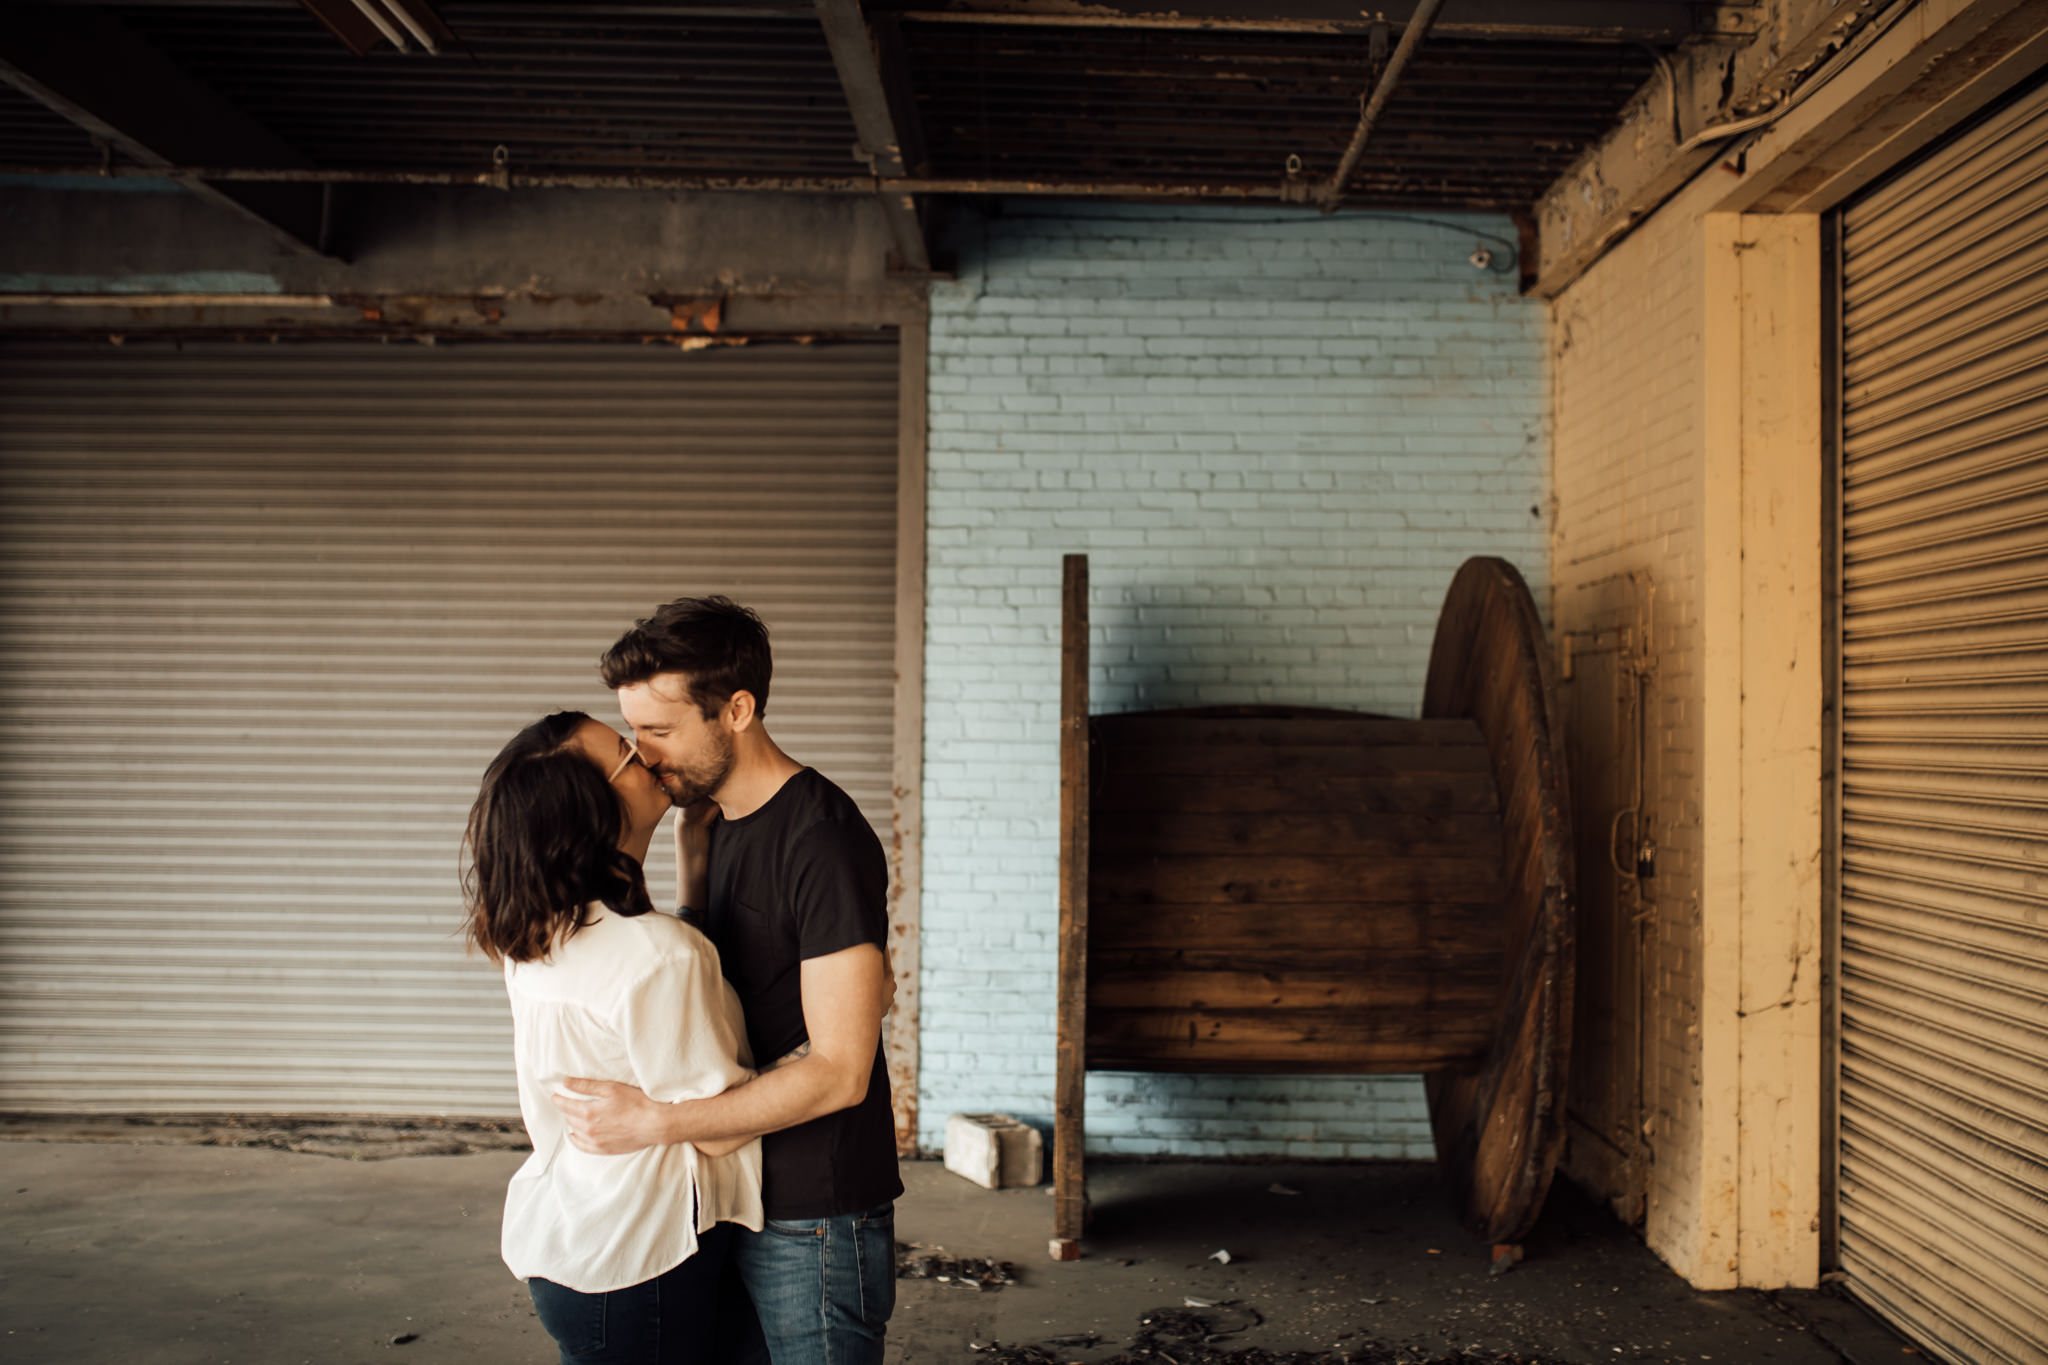 memphis-wedding-photographer-the-warmth-around-you-unique-colorful-engagement-pictures (66 of 80).jpg